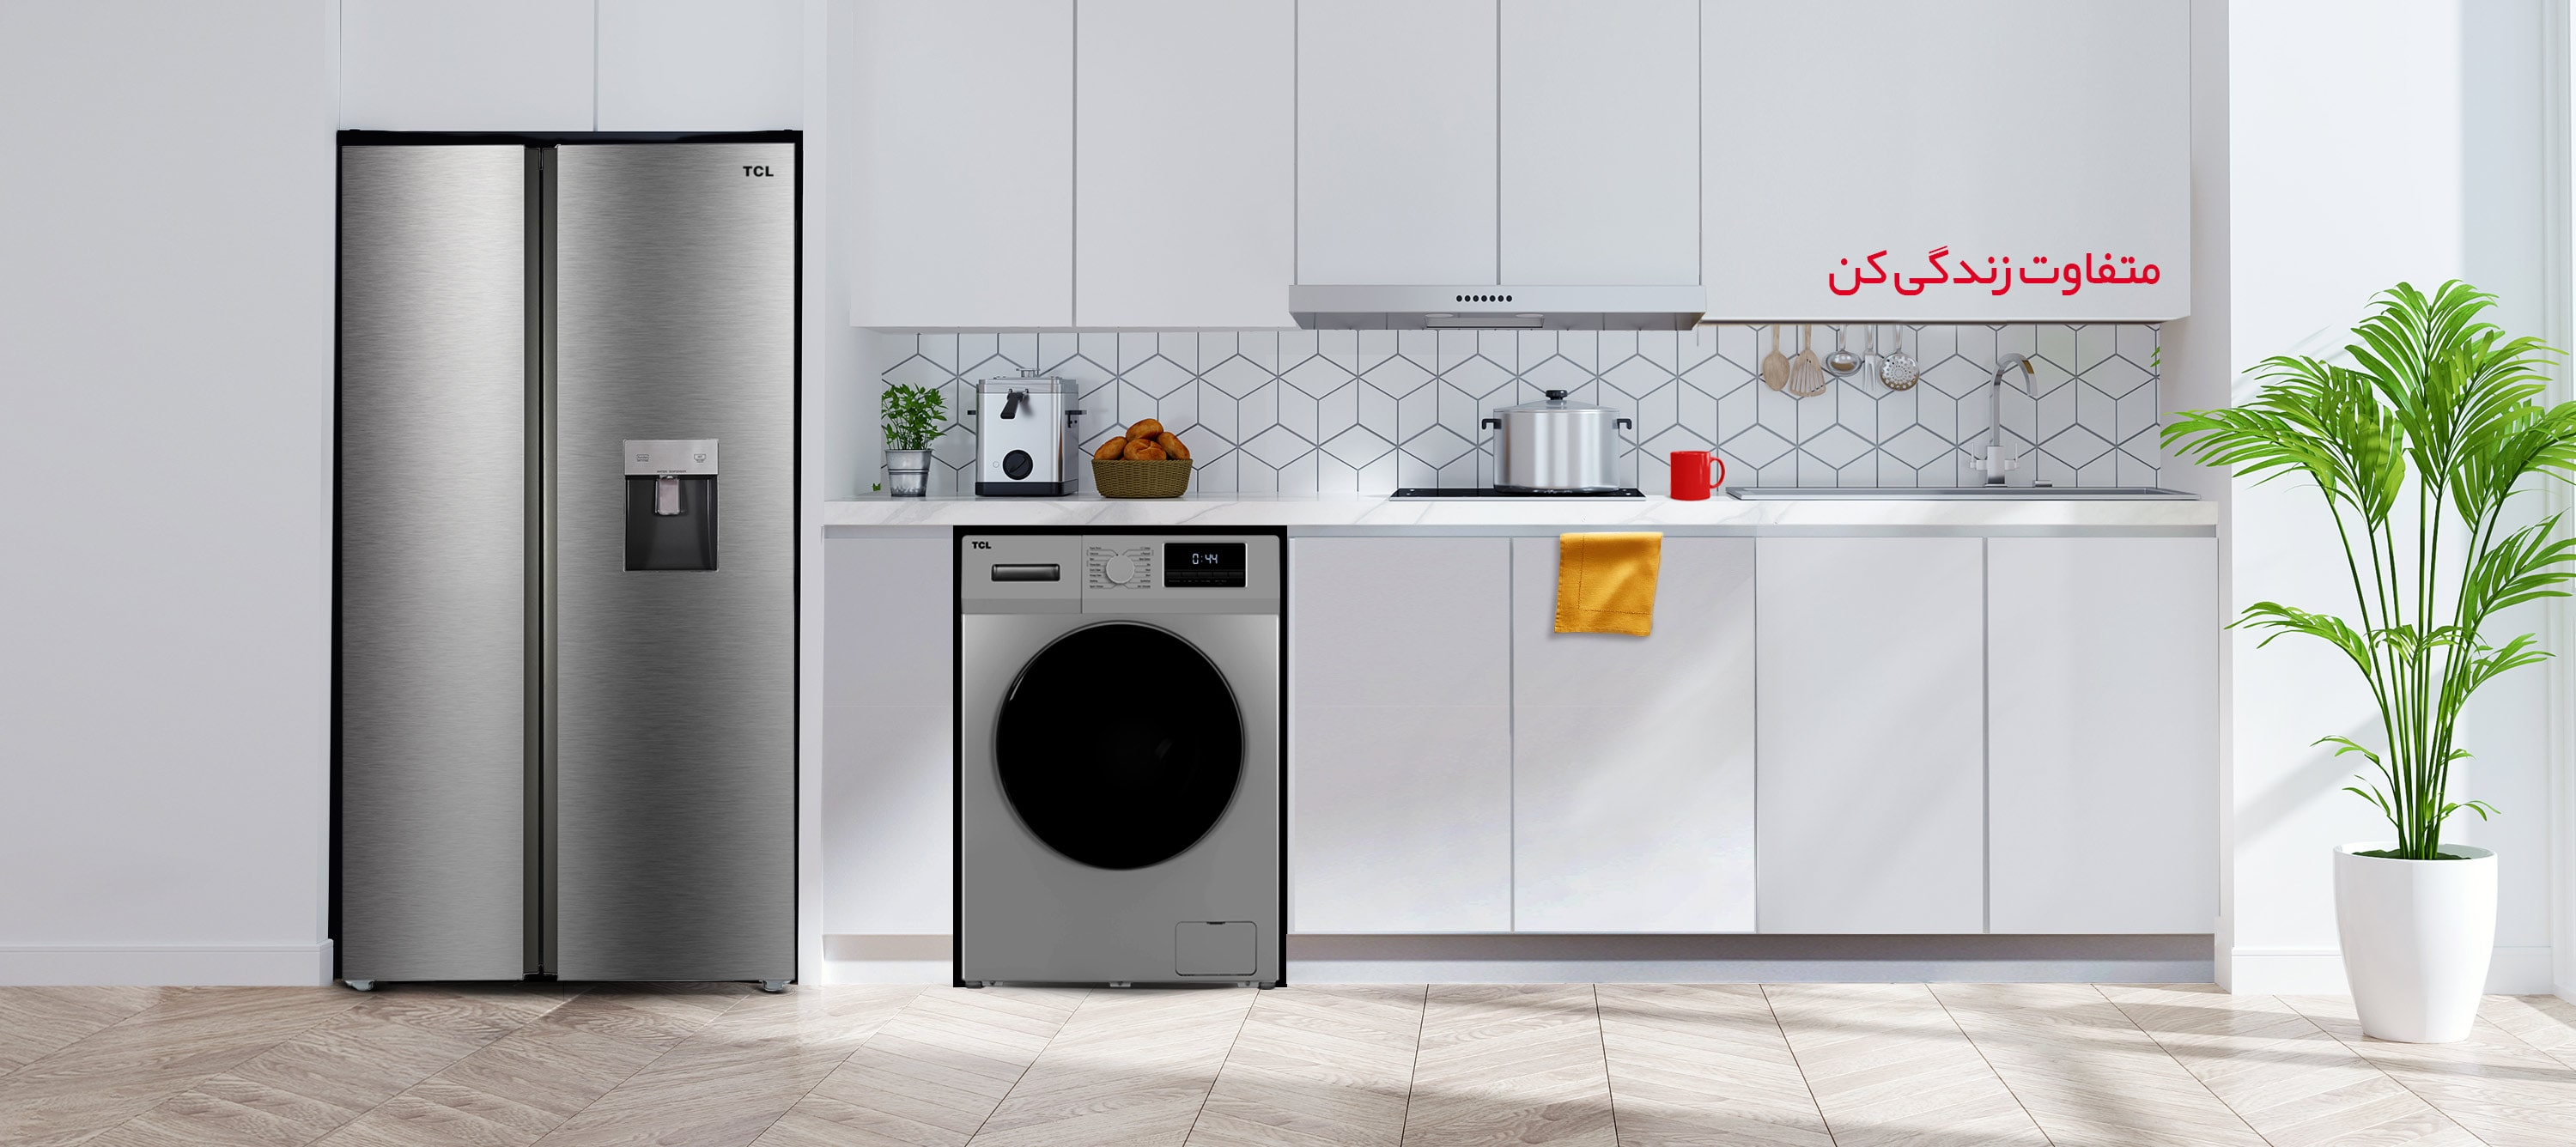 TCL Home Appliances